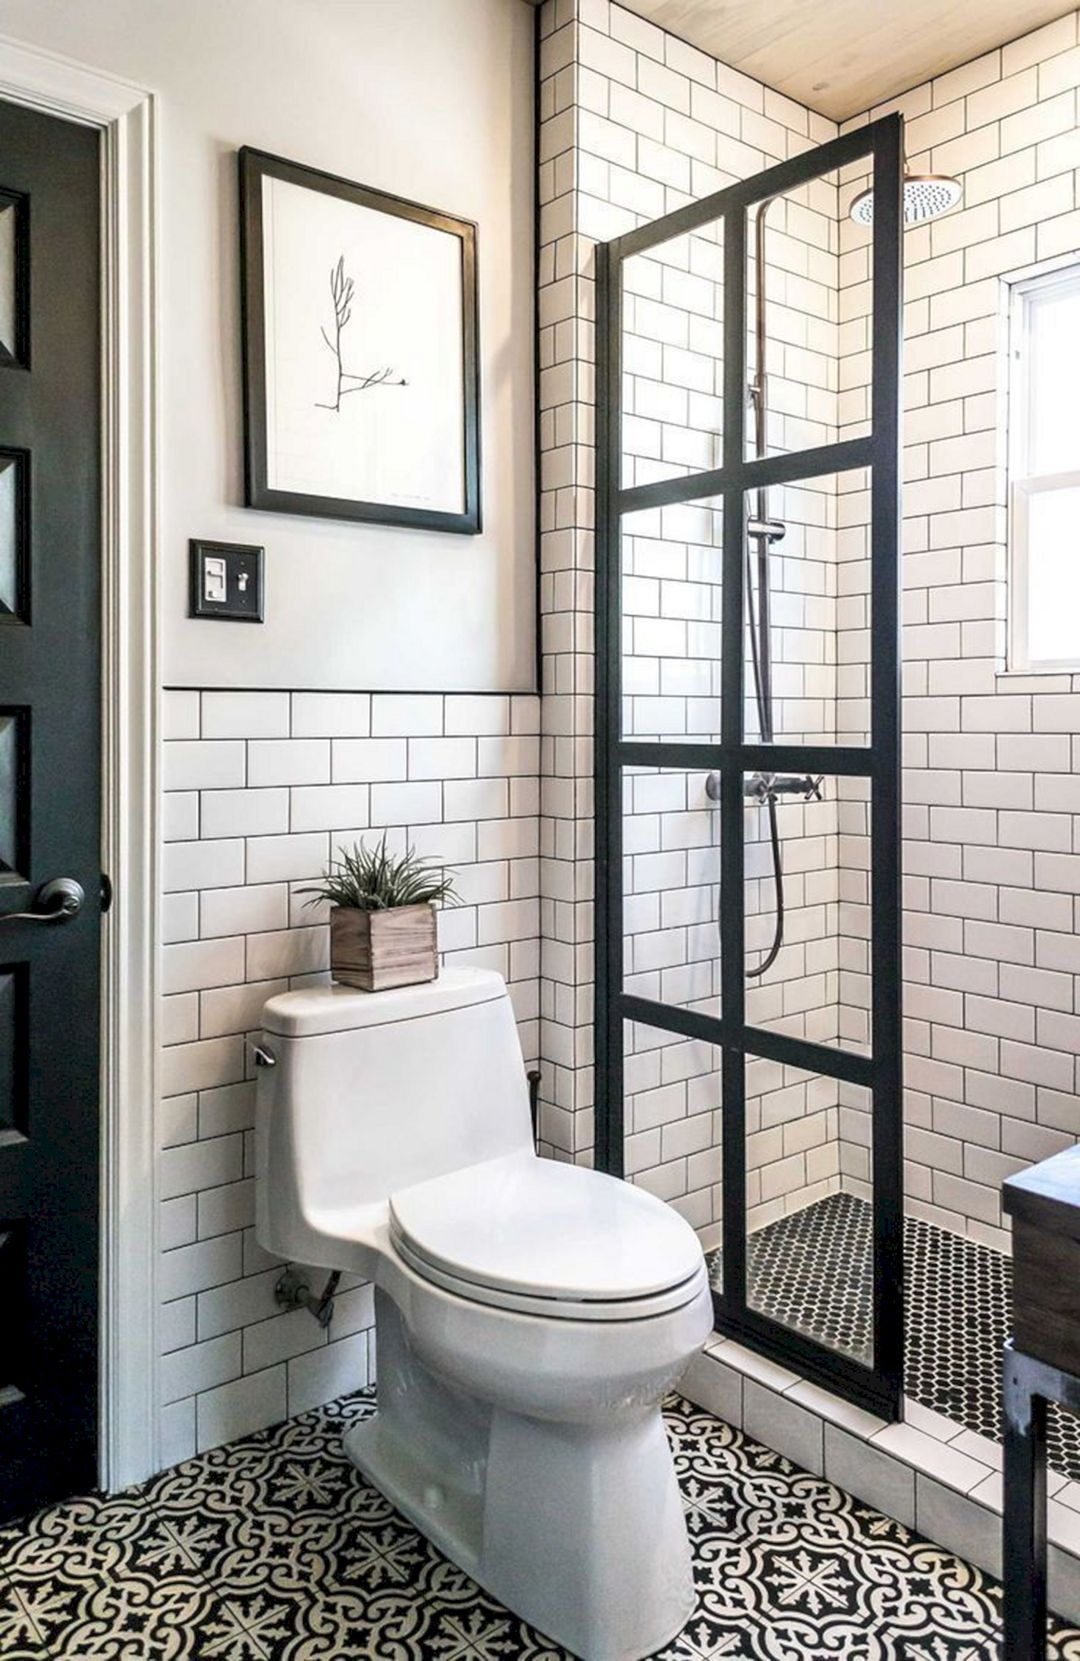 15 Gorgeous Small Bathroom Remodel Ideas On A Budget Cheap Bathroom Remodel Small Bathroom Remodel Small Bathroom Small bathroom bathroom design